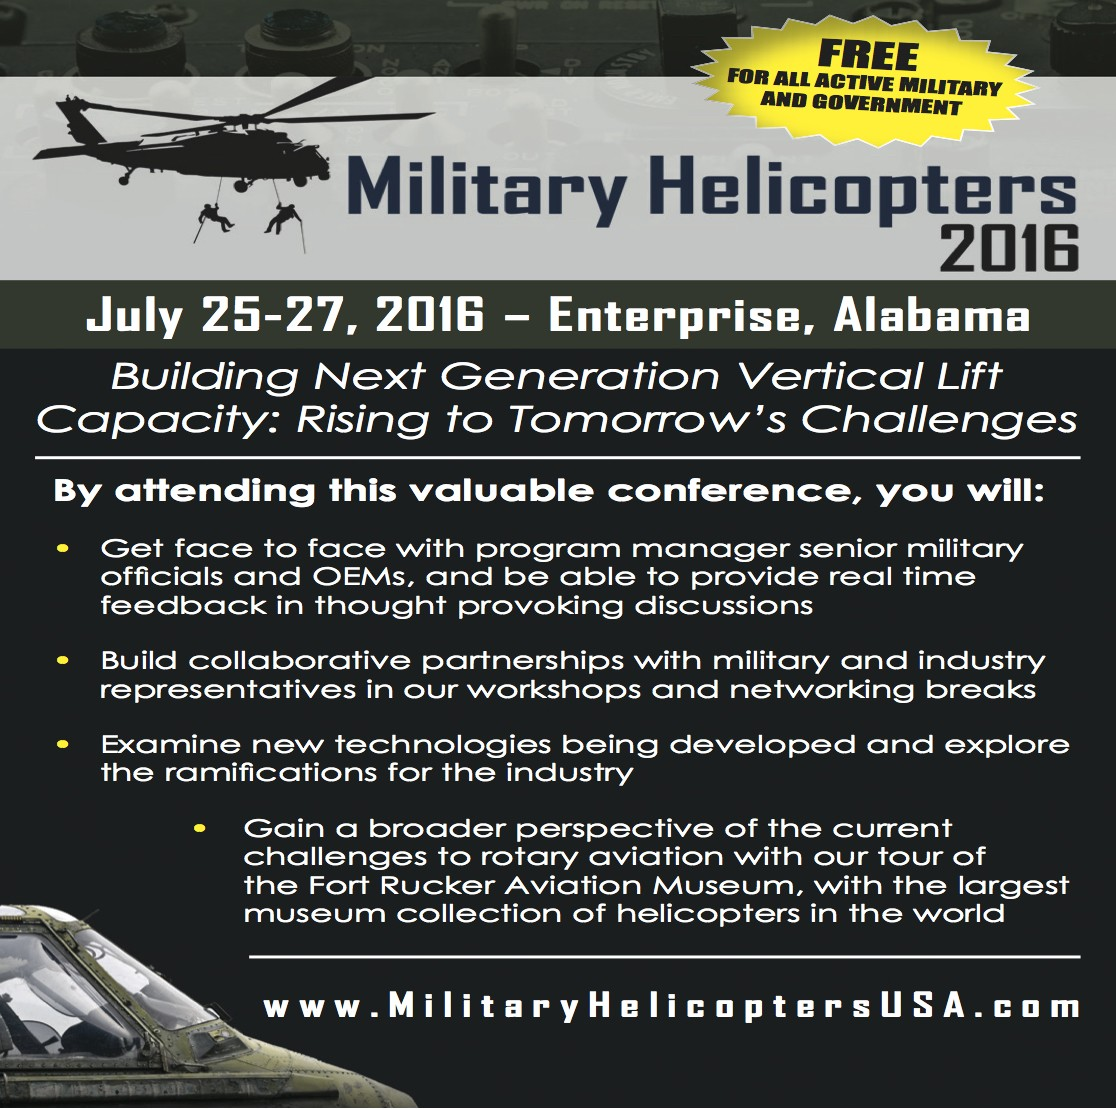 Military Helicopters Baner Ad